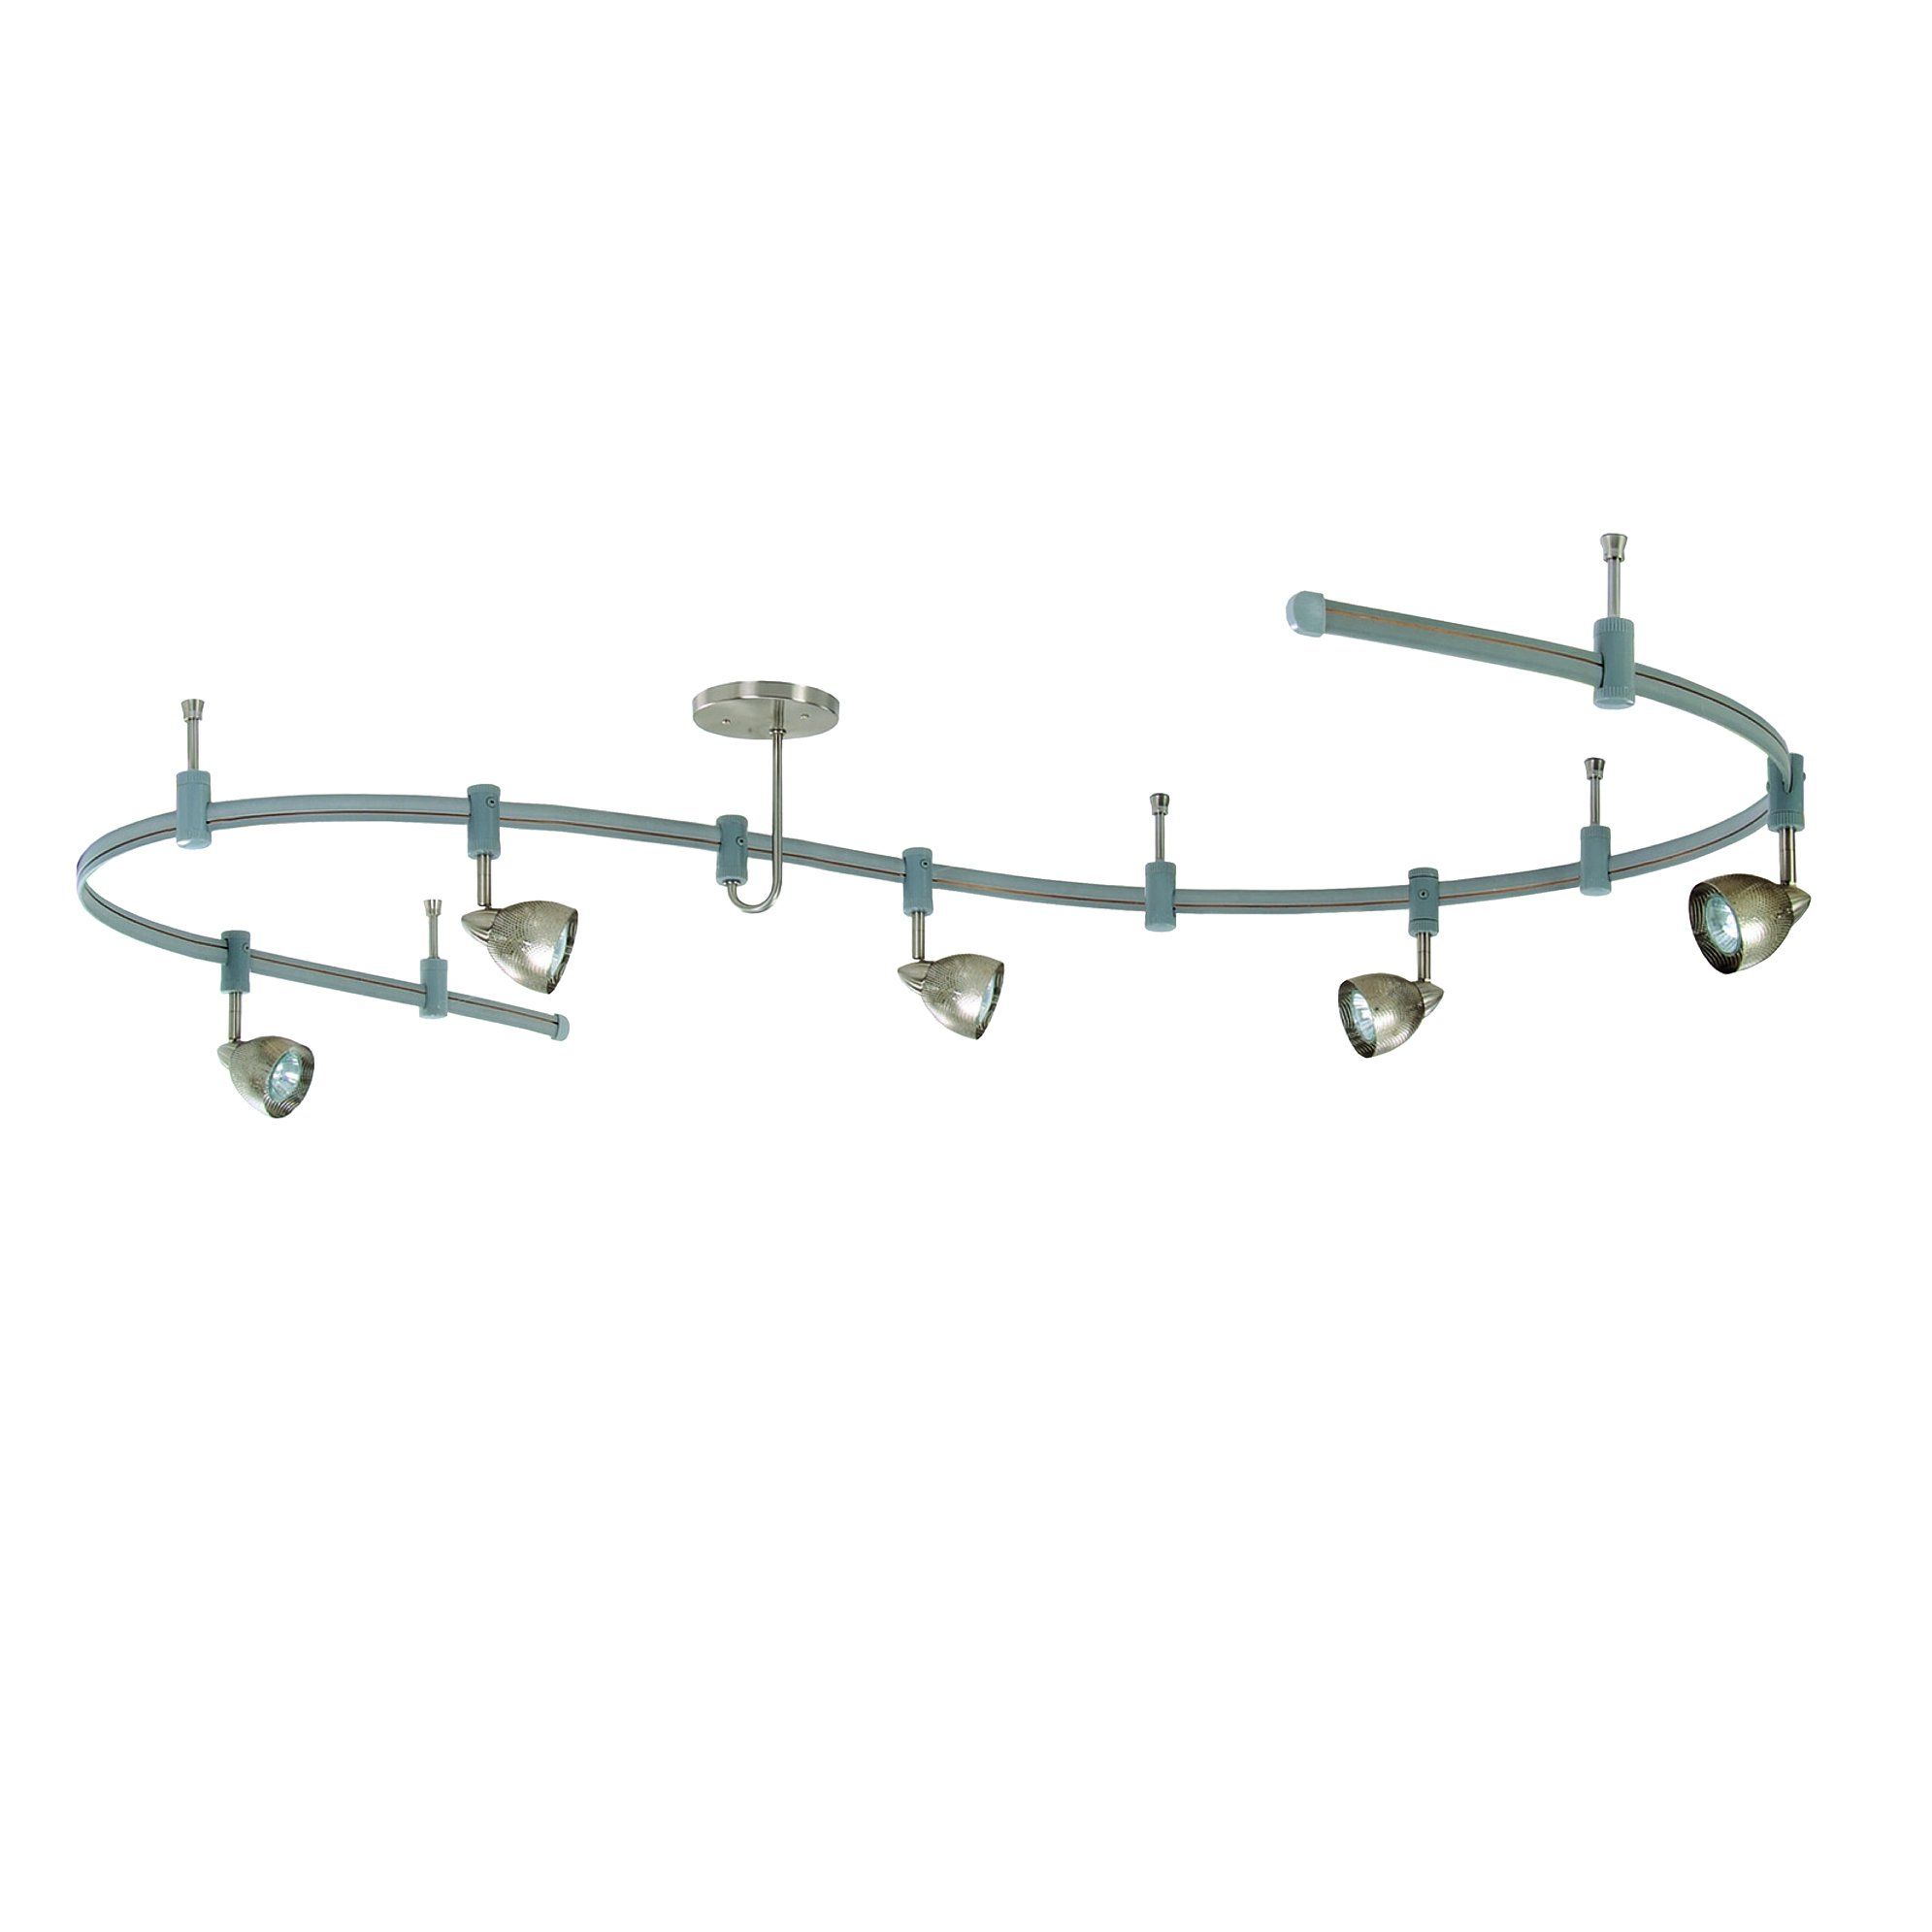 Home Depot Track Lighting On Winlights Com Deluxe